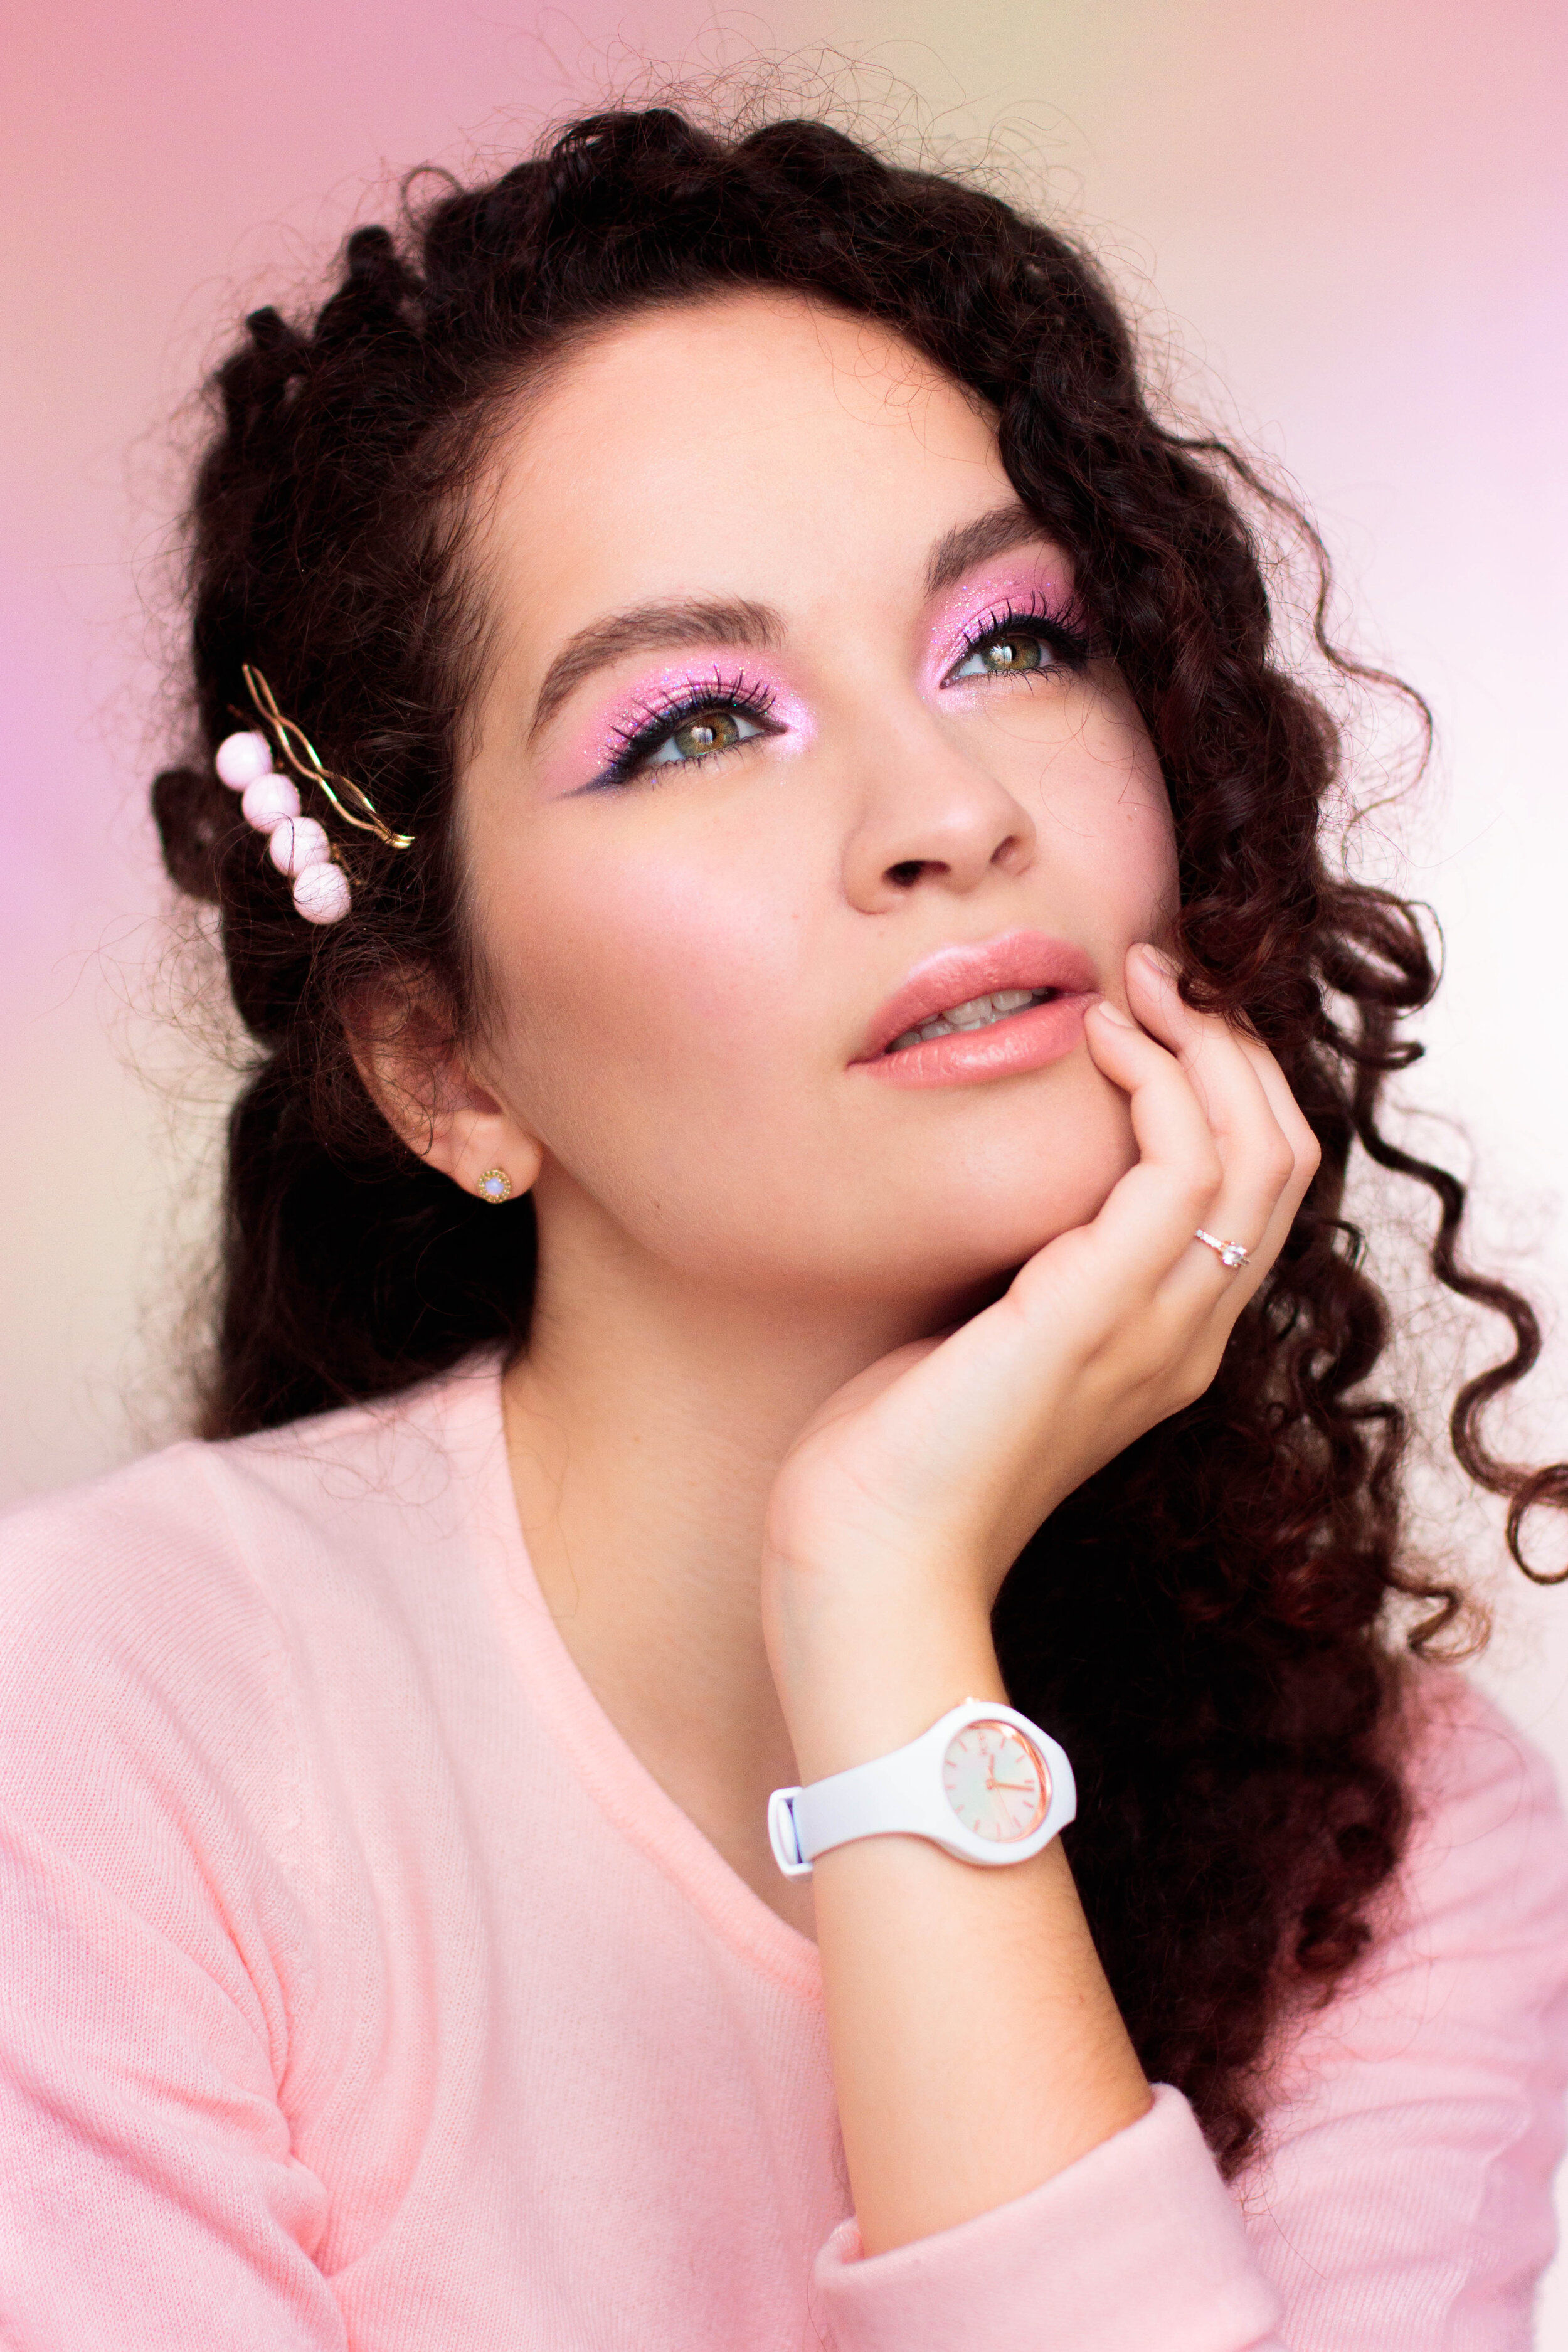 ice-watch-pearl-xs-white-makeup-pauuulette.jpg